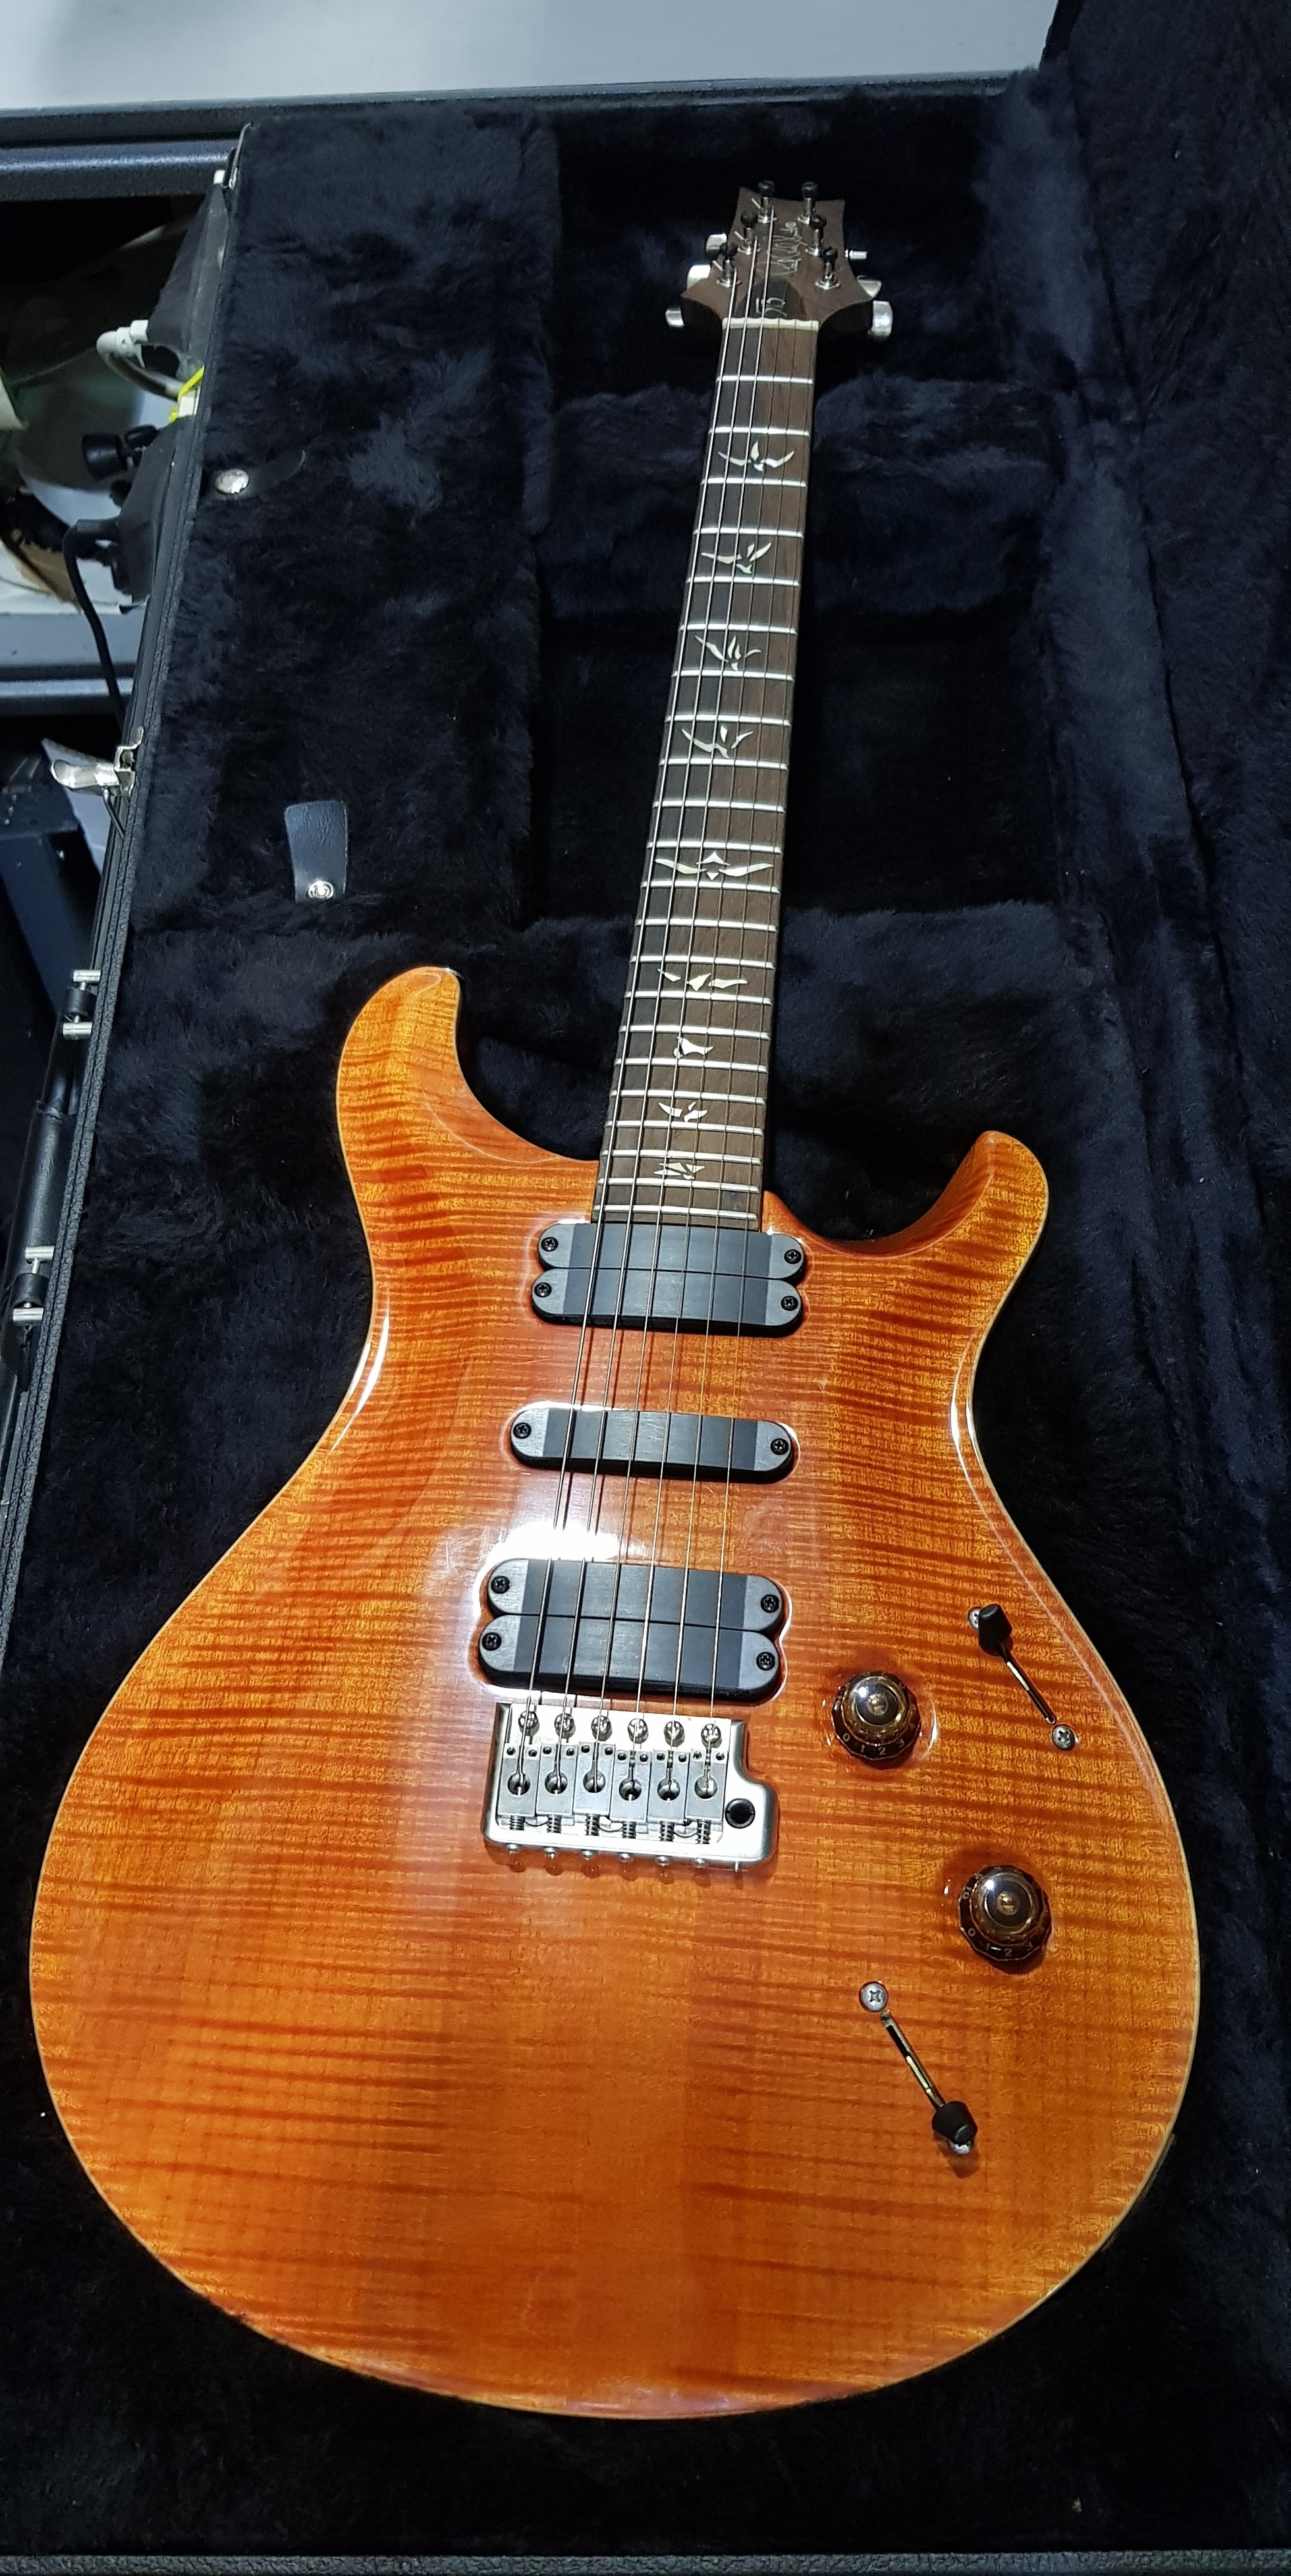 2005 PAUL REED SMITH PRS 513 Electric Guitar **OHSC** Brazilian Rosewood Neck